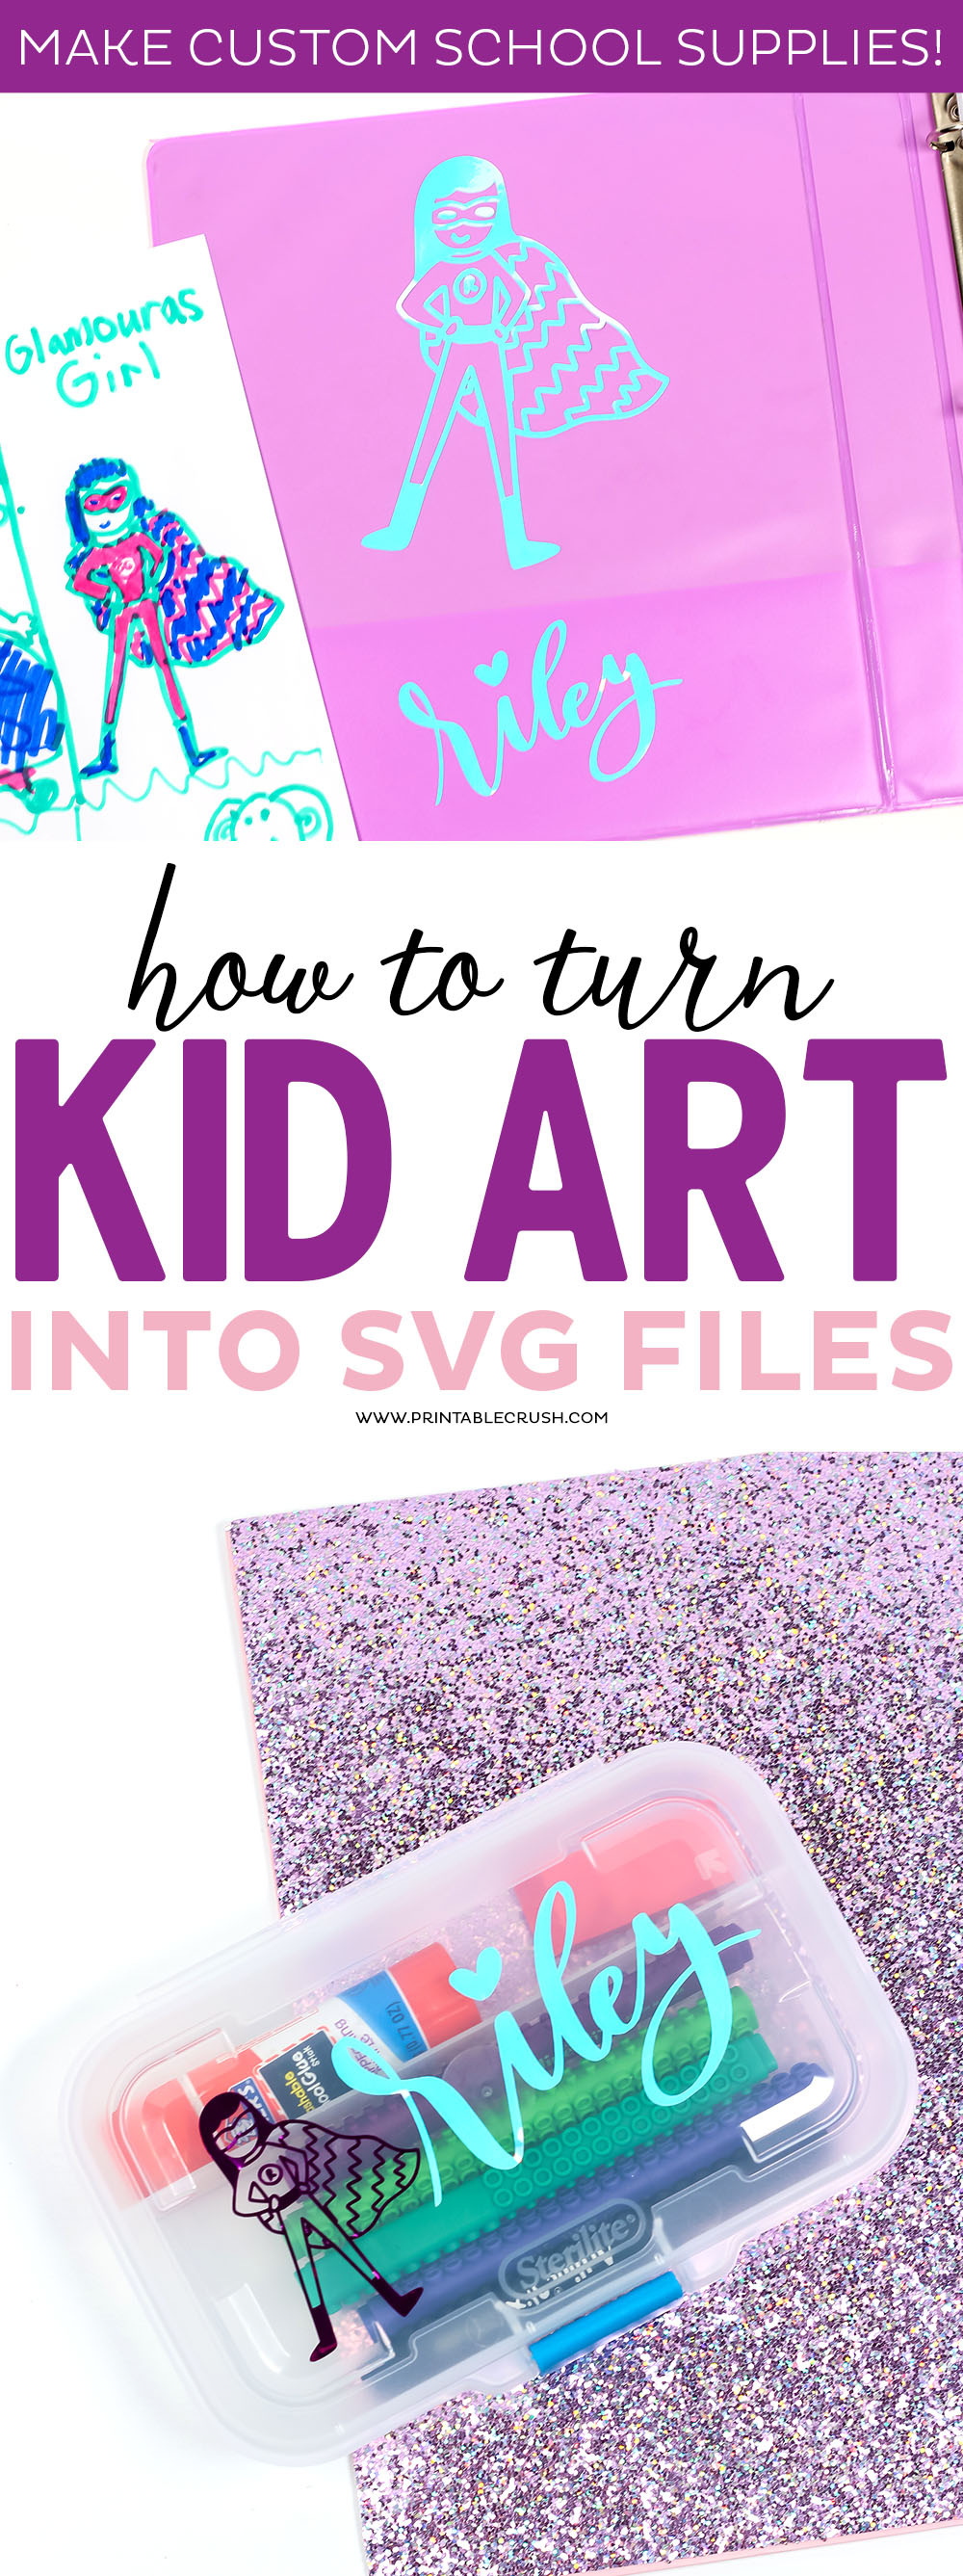 Learn how to Turn Kid Art into SVG Files with your Cricut Machine and vinyl! This is the perfect tutorial for creating custom Back to School Supplies.